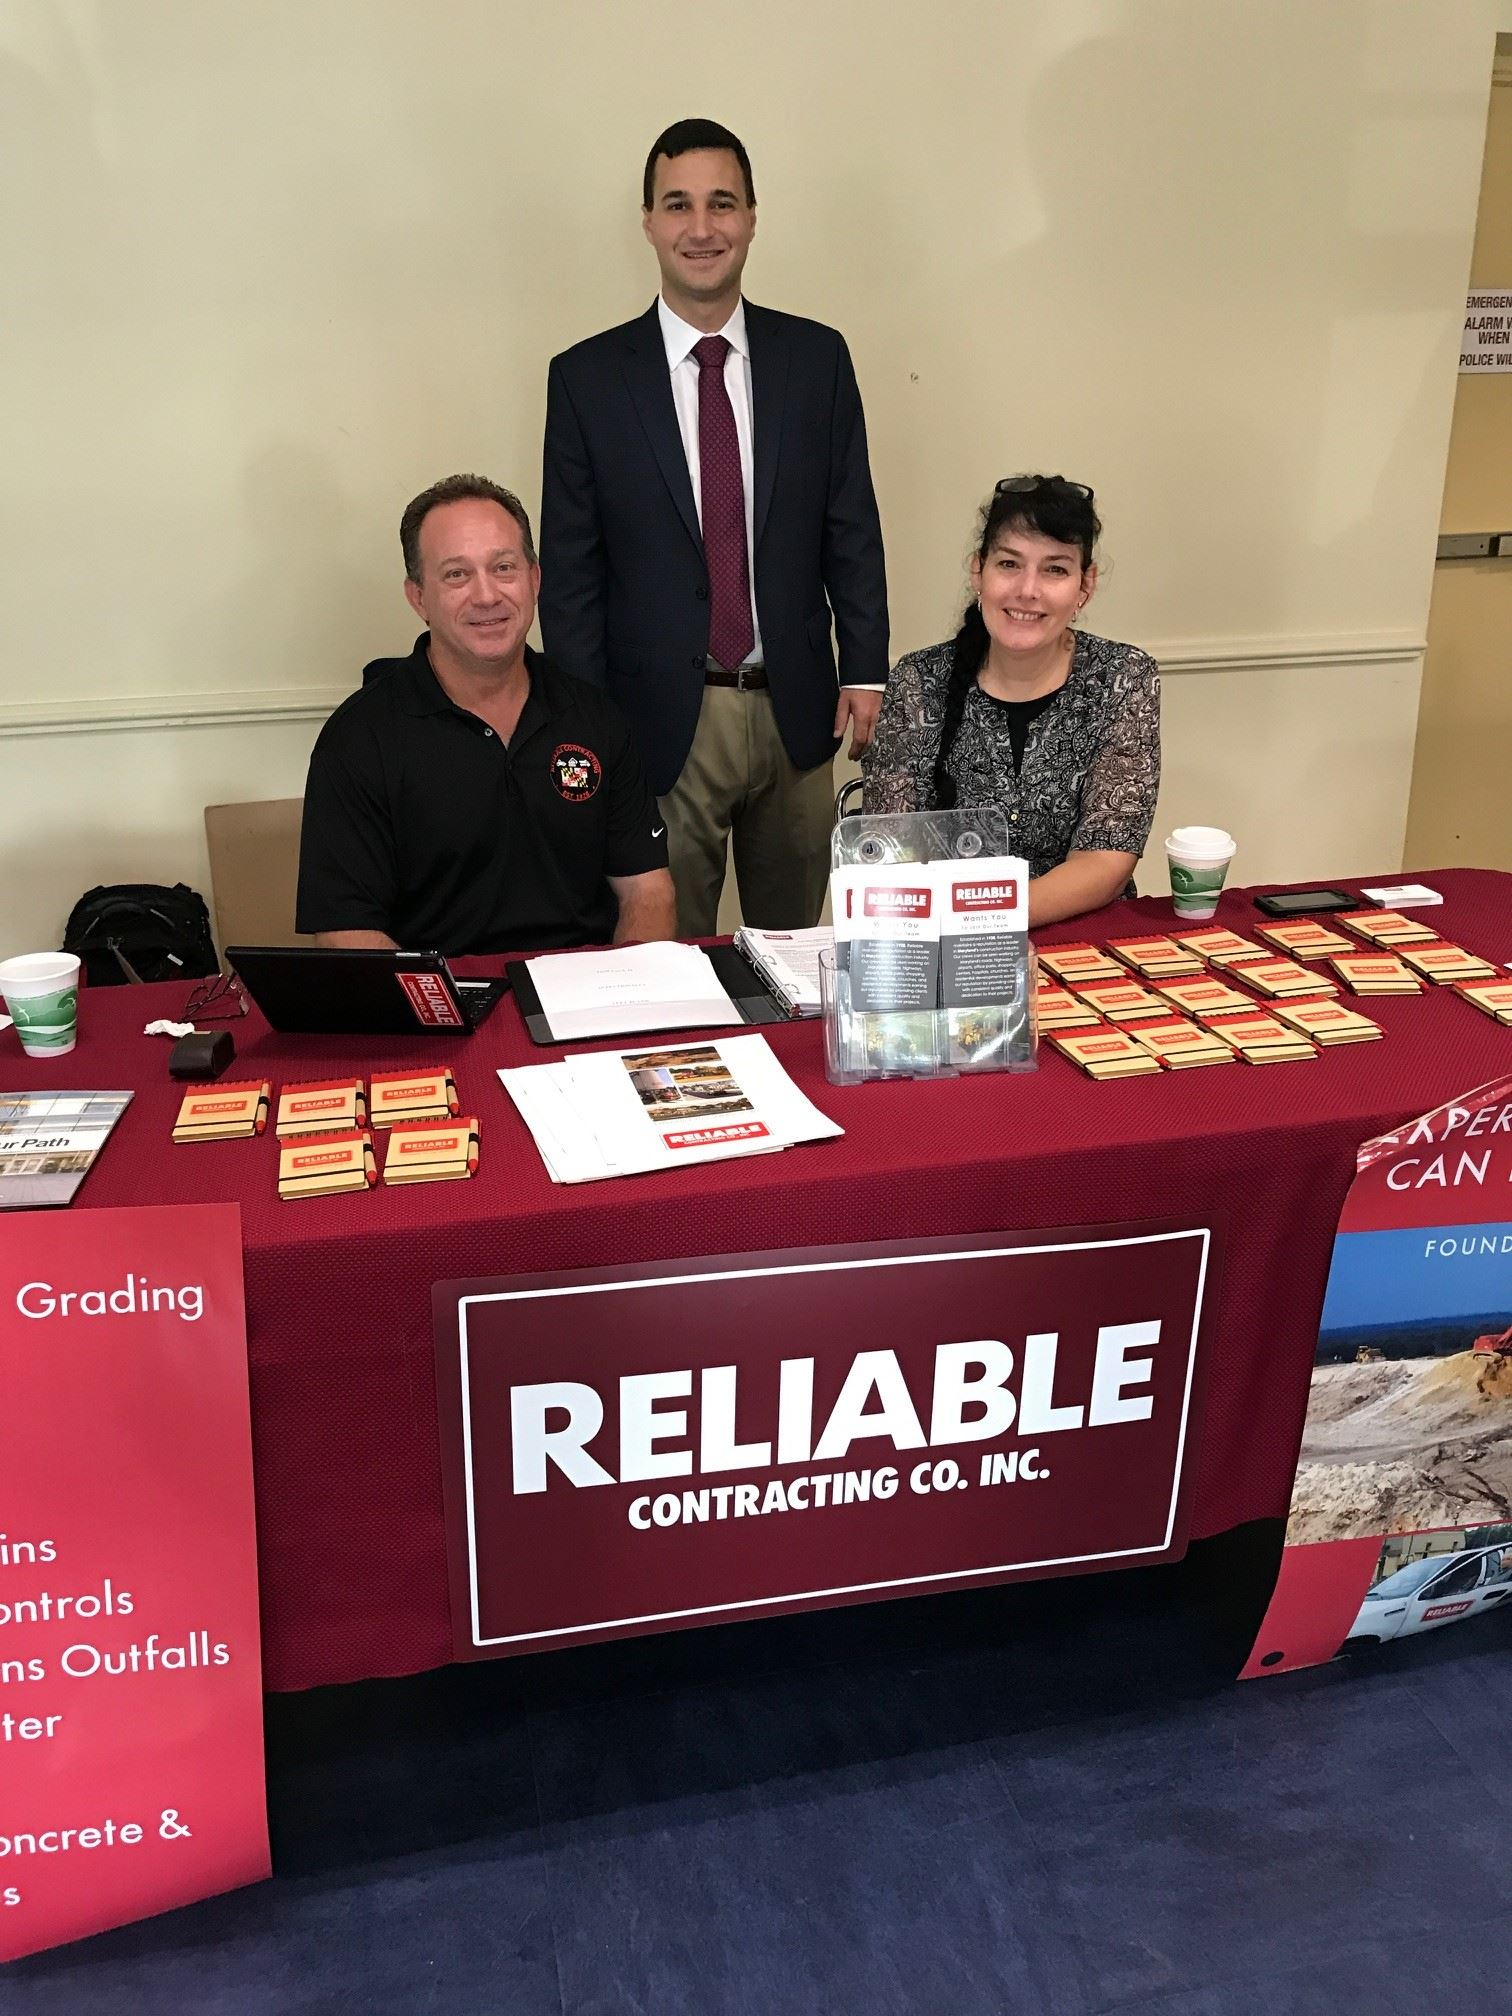 Mayor Pantelides with representatives of Reliable Contracting Co. Inc.